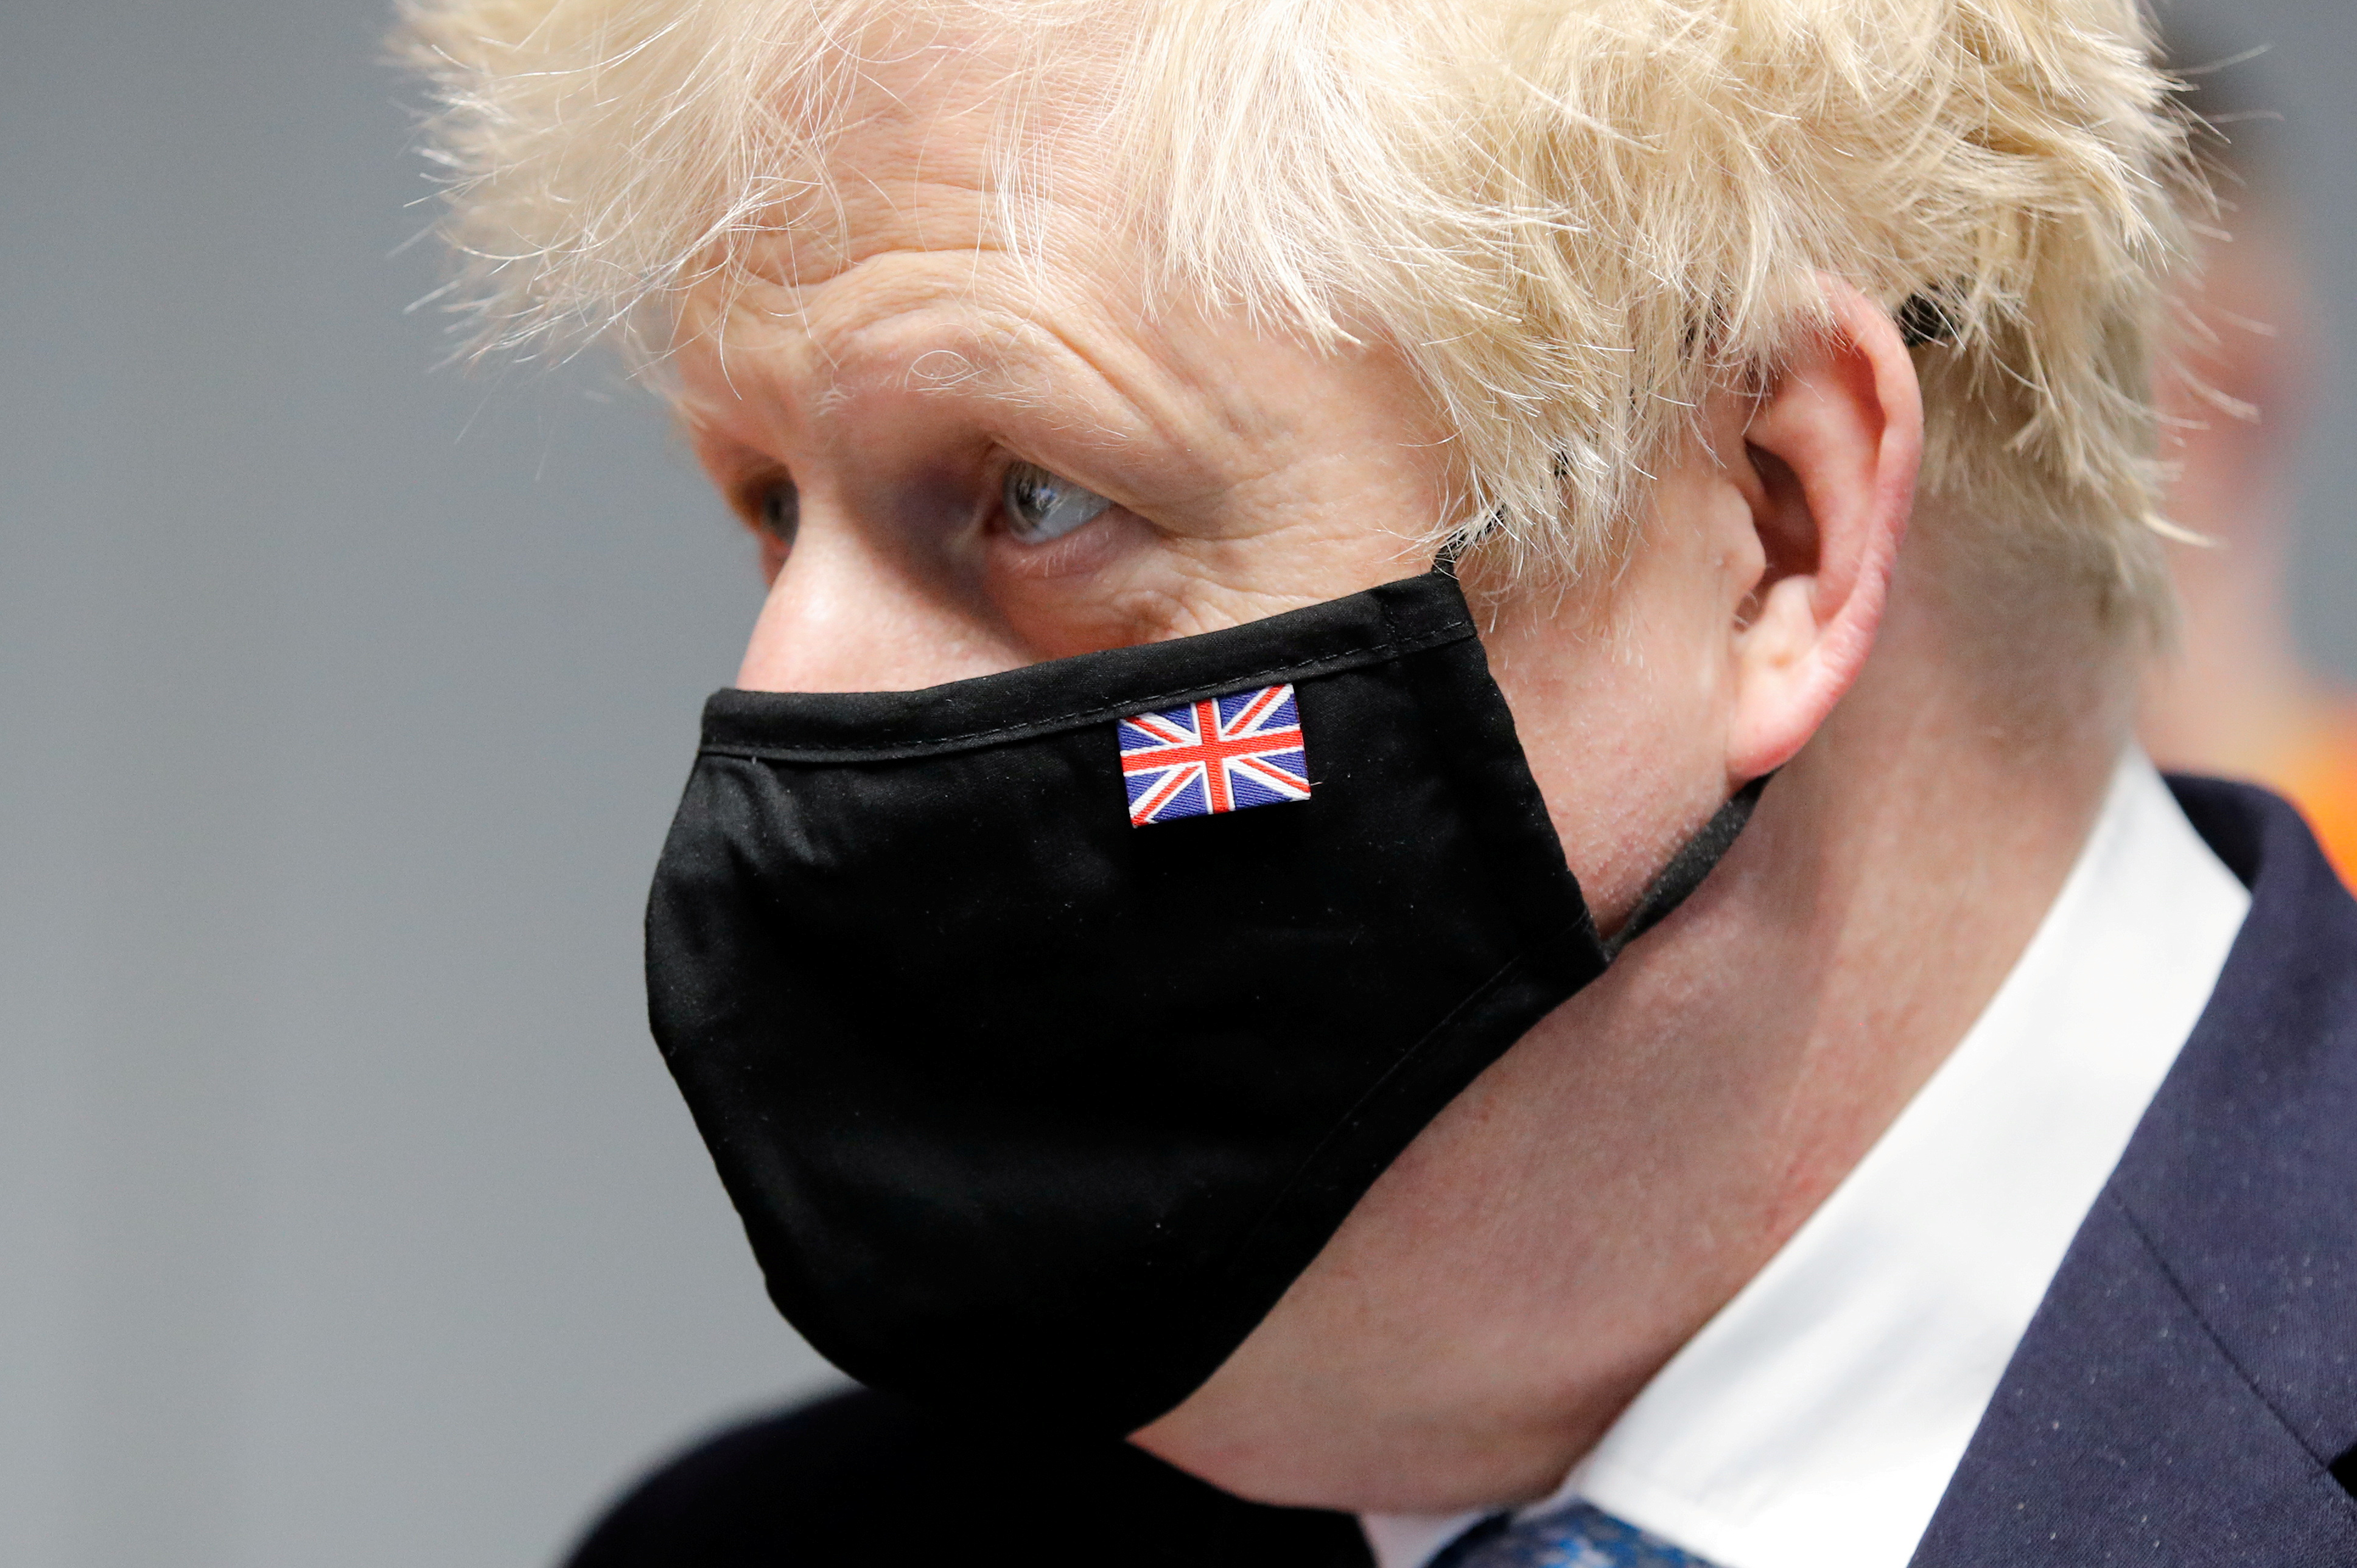 Britain's Prime Minister Boris Johnson wears a mask during a visit to Severn Trent Academy in Coventry, West Midlands, Britain, May 7, 2021. REUTERS/Phil Noble/Pool/File Photo